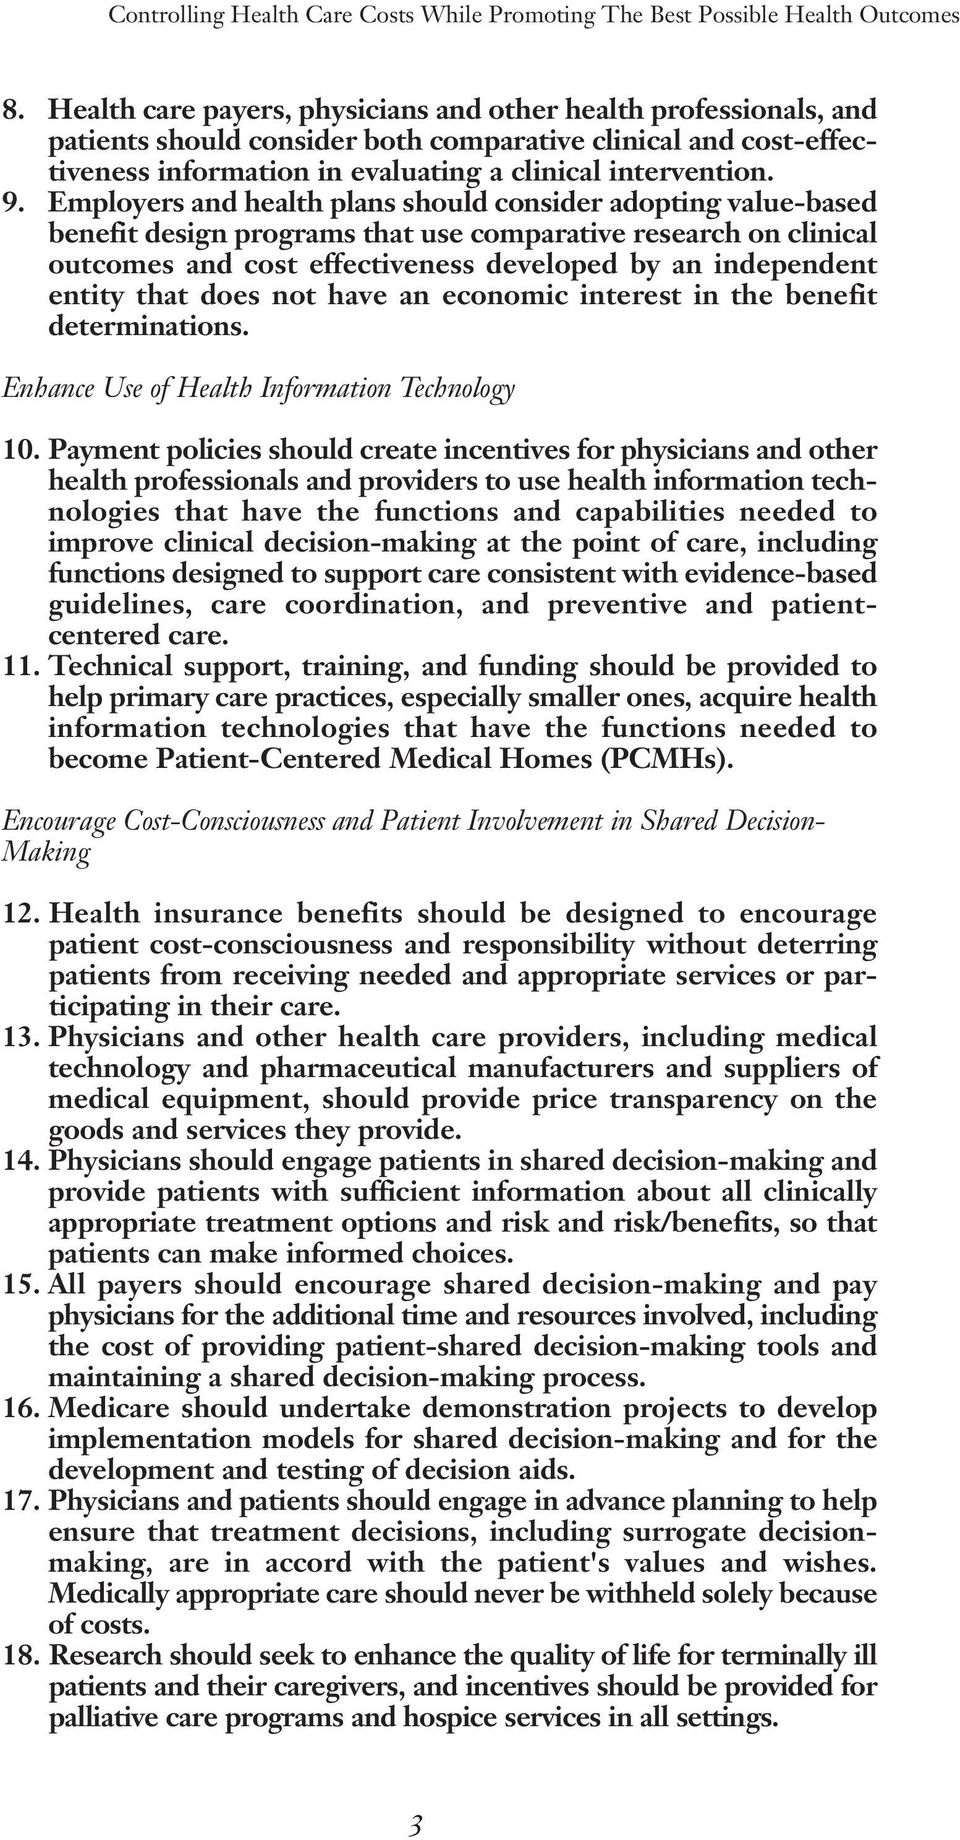 that does not have an economic interest in the benefit determinations. Enhance Use of Health Information Technology 10.